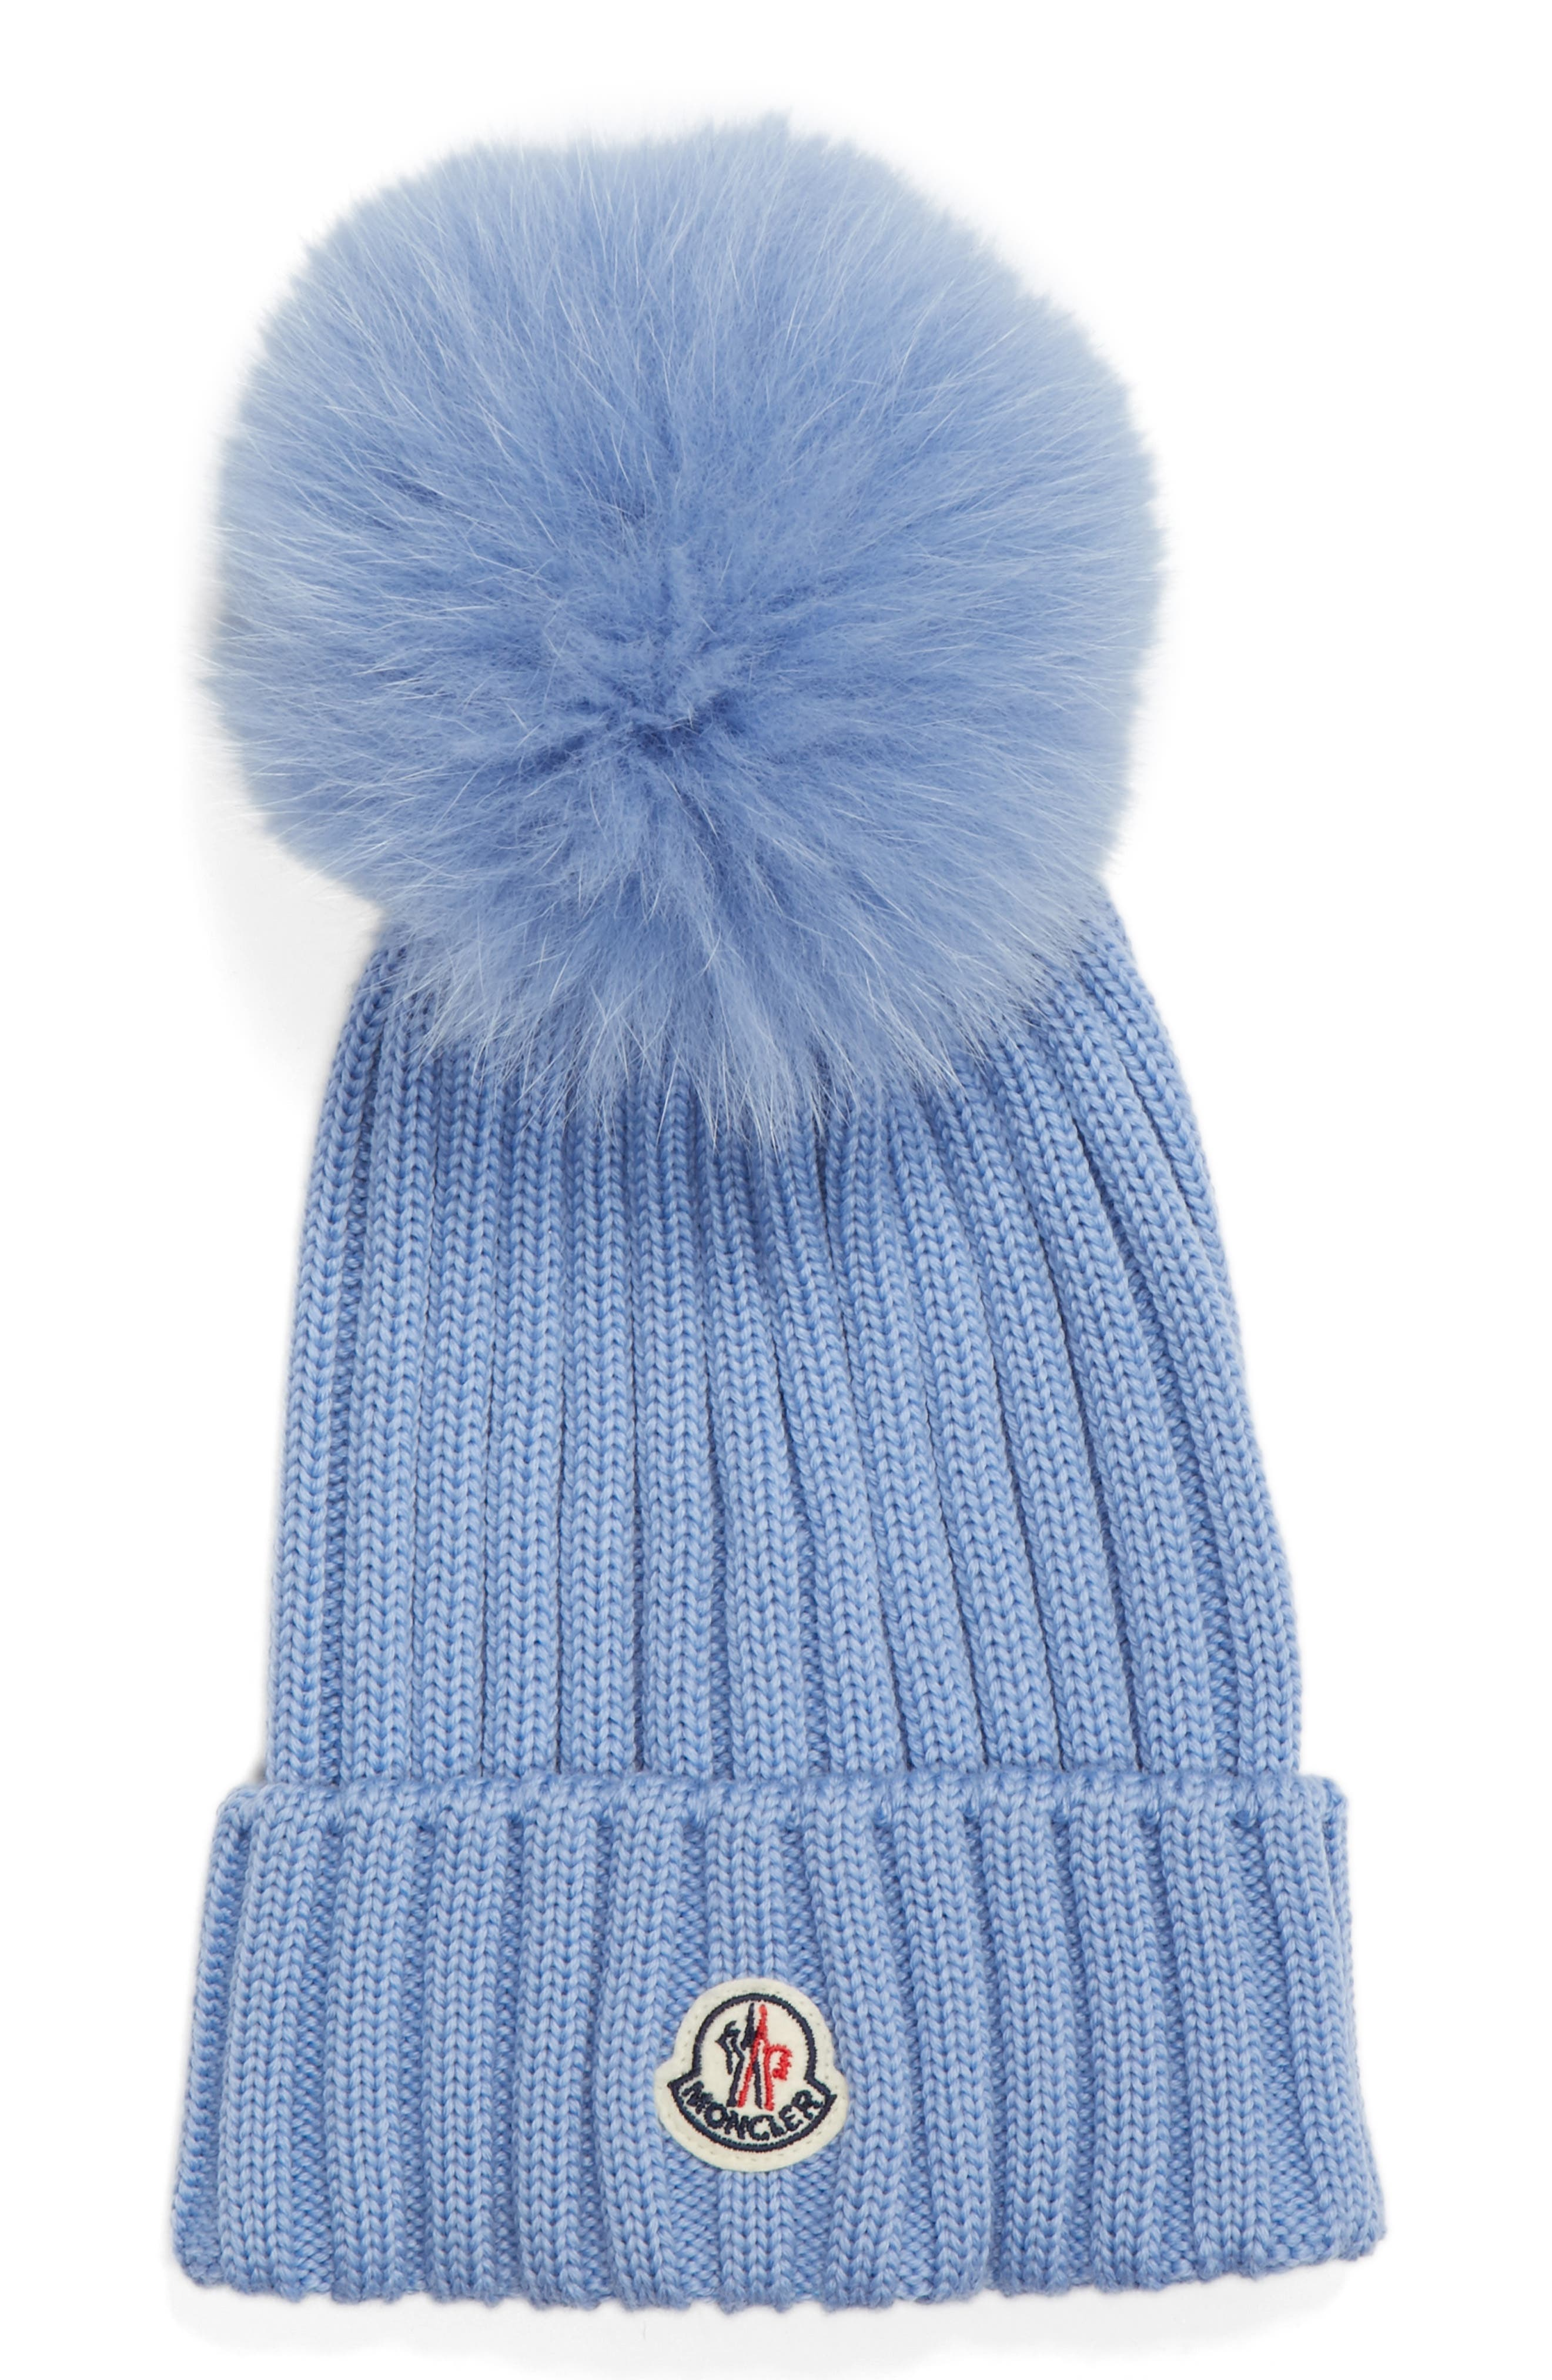 MONCLER Genuine Fox Fur Pom Wool Beanie, Main, color, BLUE